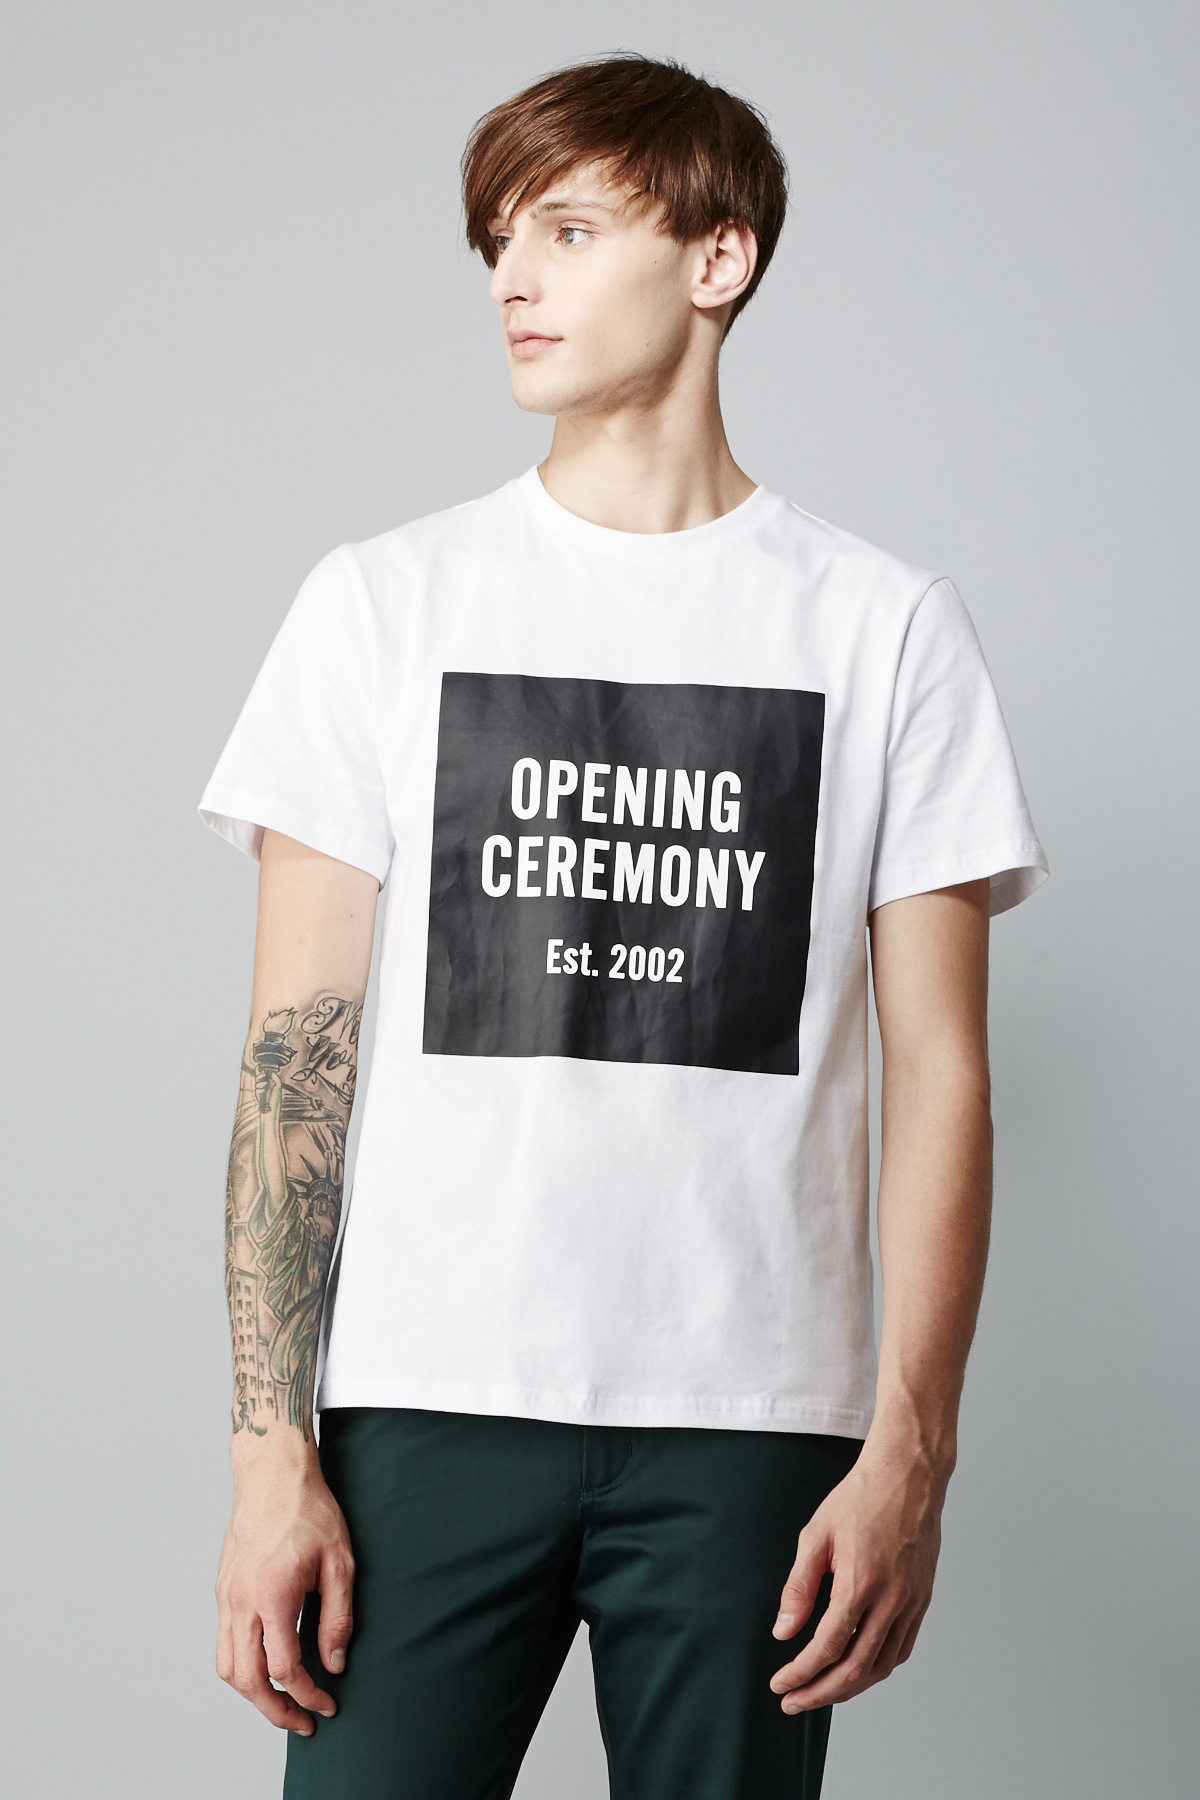 opening ceremony oc logo t shirt men just in opening